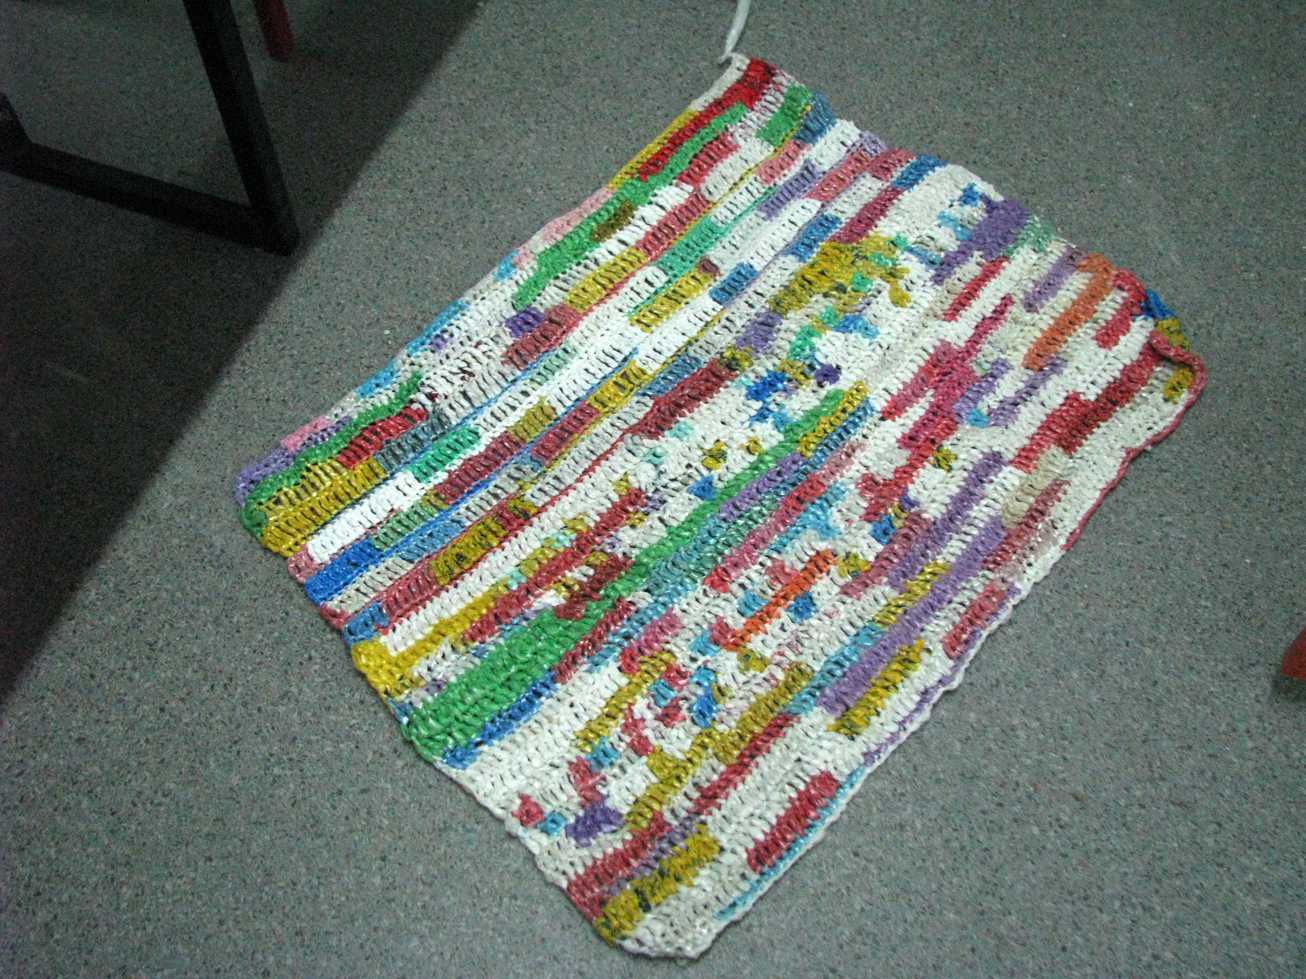 Crocheting Mats From Plastic Bags : Grocery+Bag+Mats Plastic Bag Mat